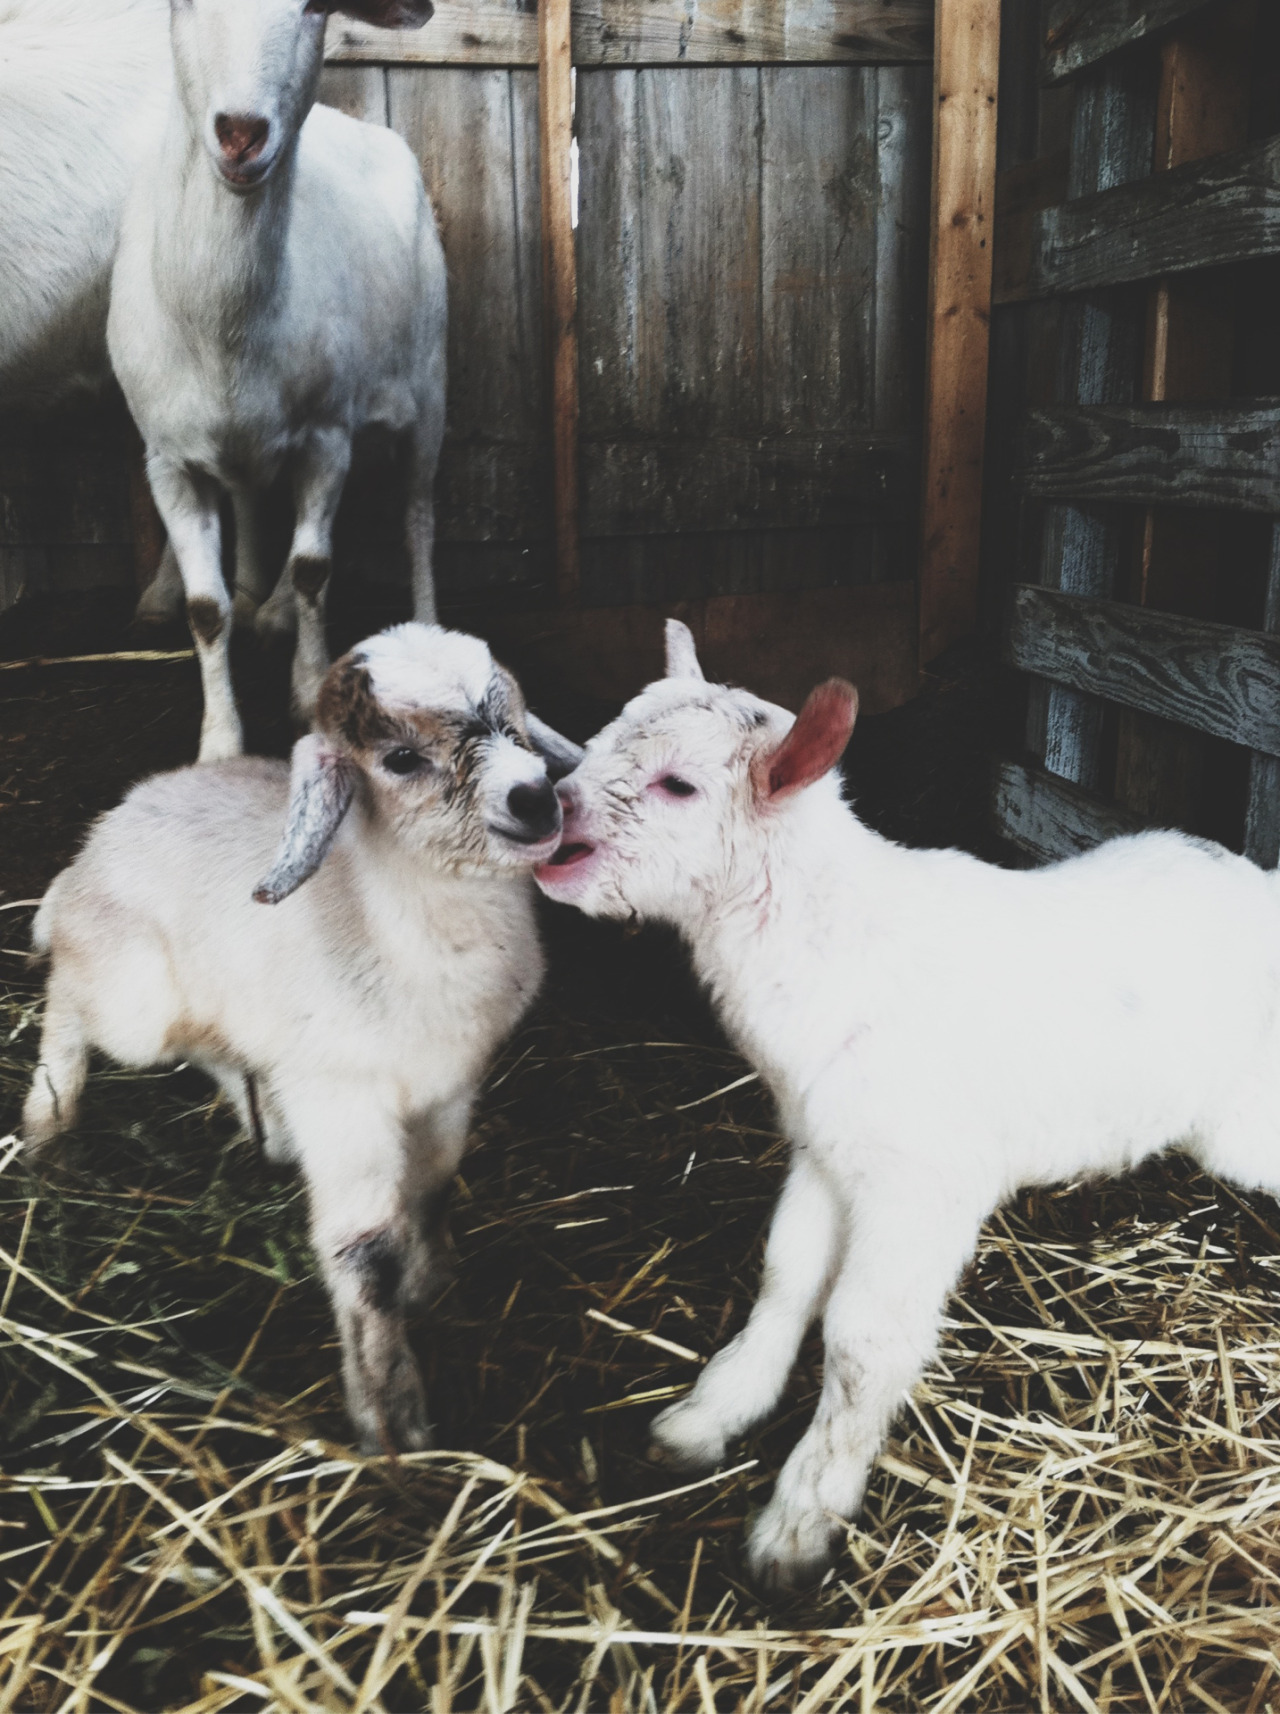 awelltraveledwoman:  My goat lady had babies last night! More on the blog awelltraveledwomam.com